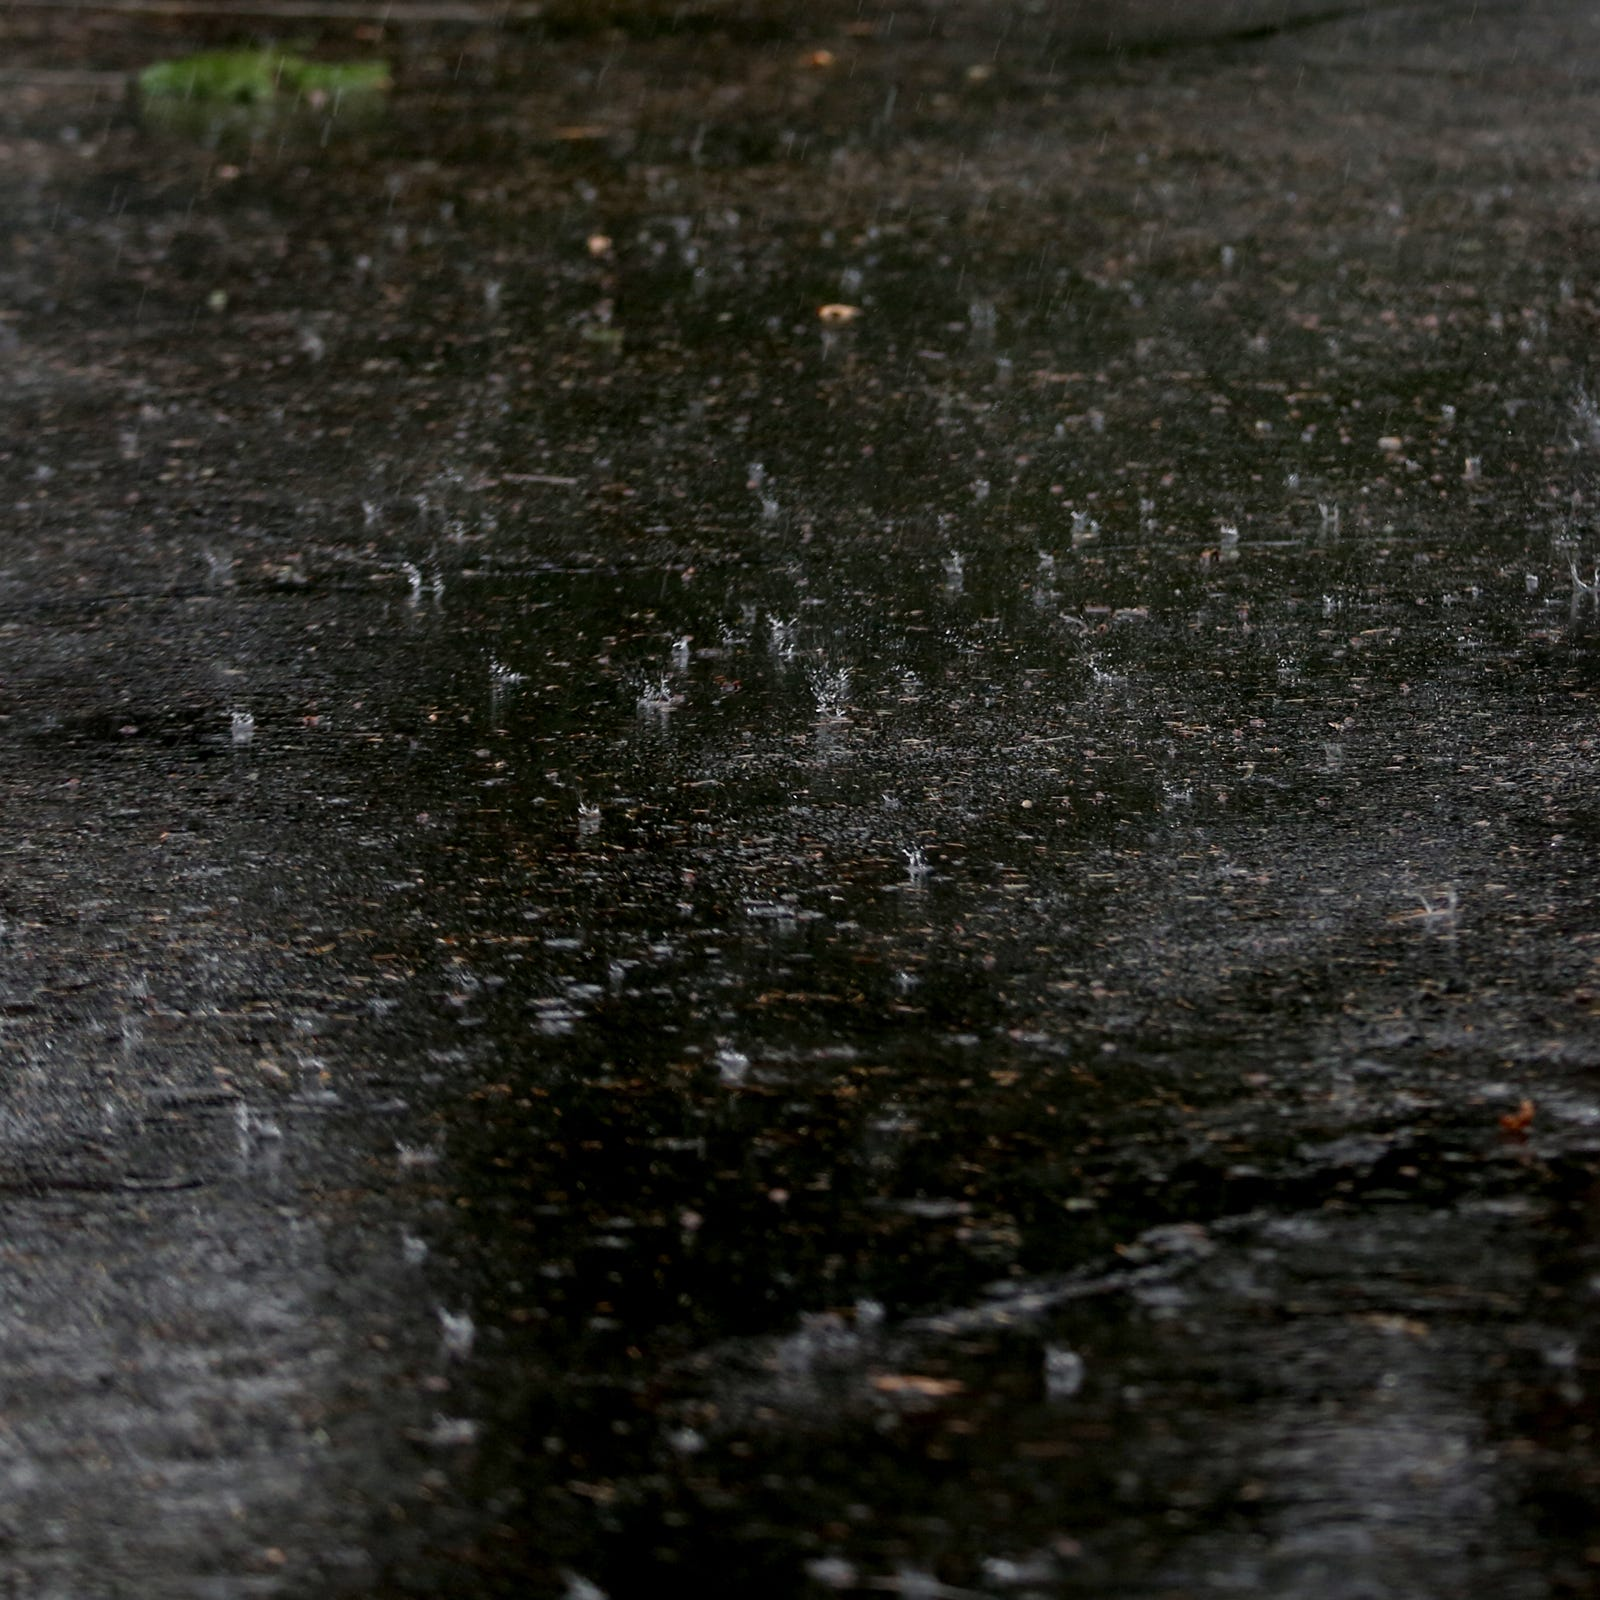 'Typical rainy day' expected Sunday in Salem, heavy rain predicted Monday night